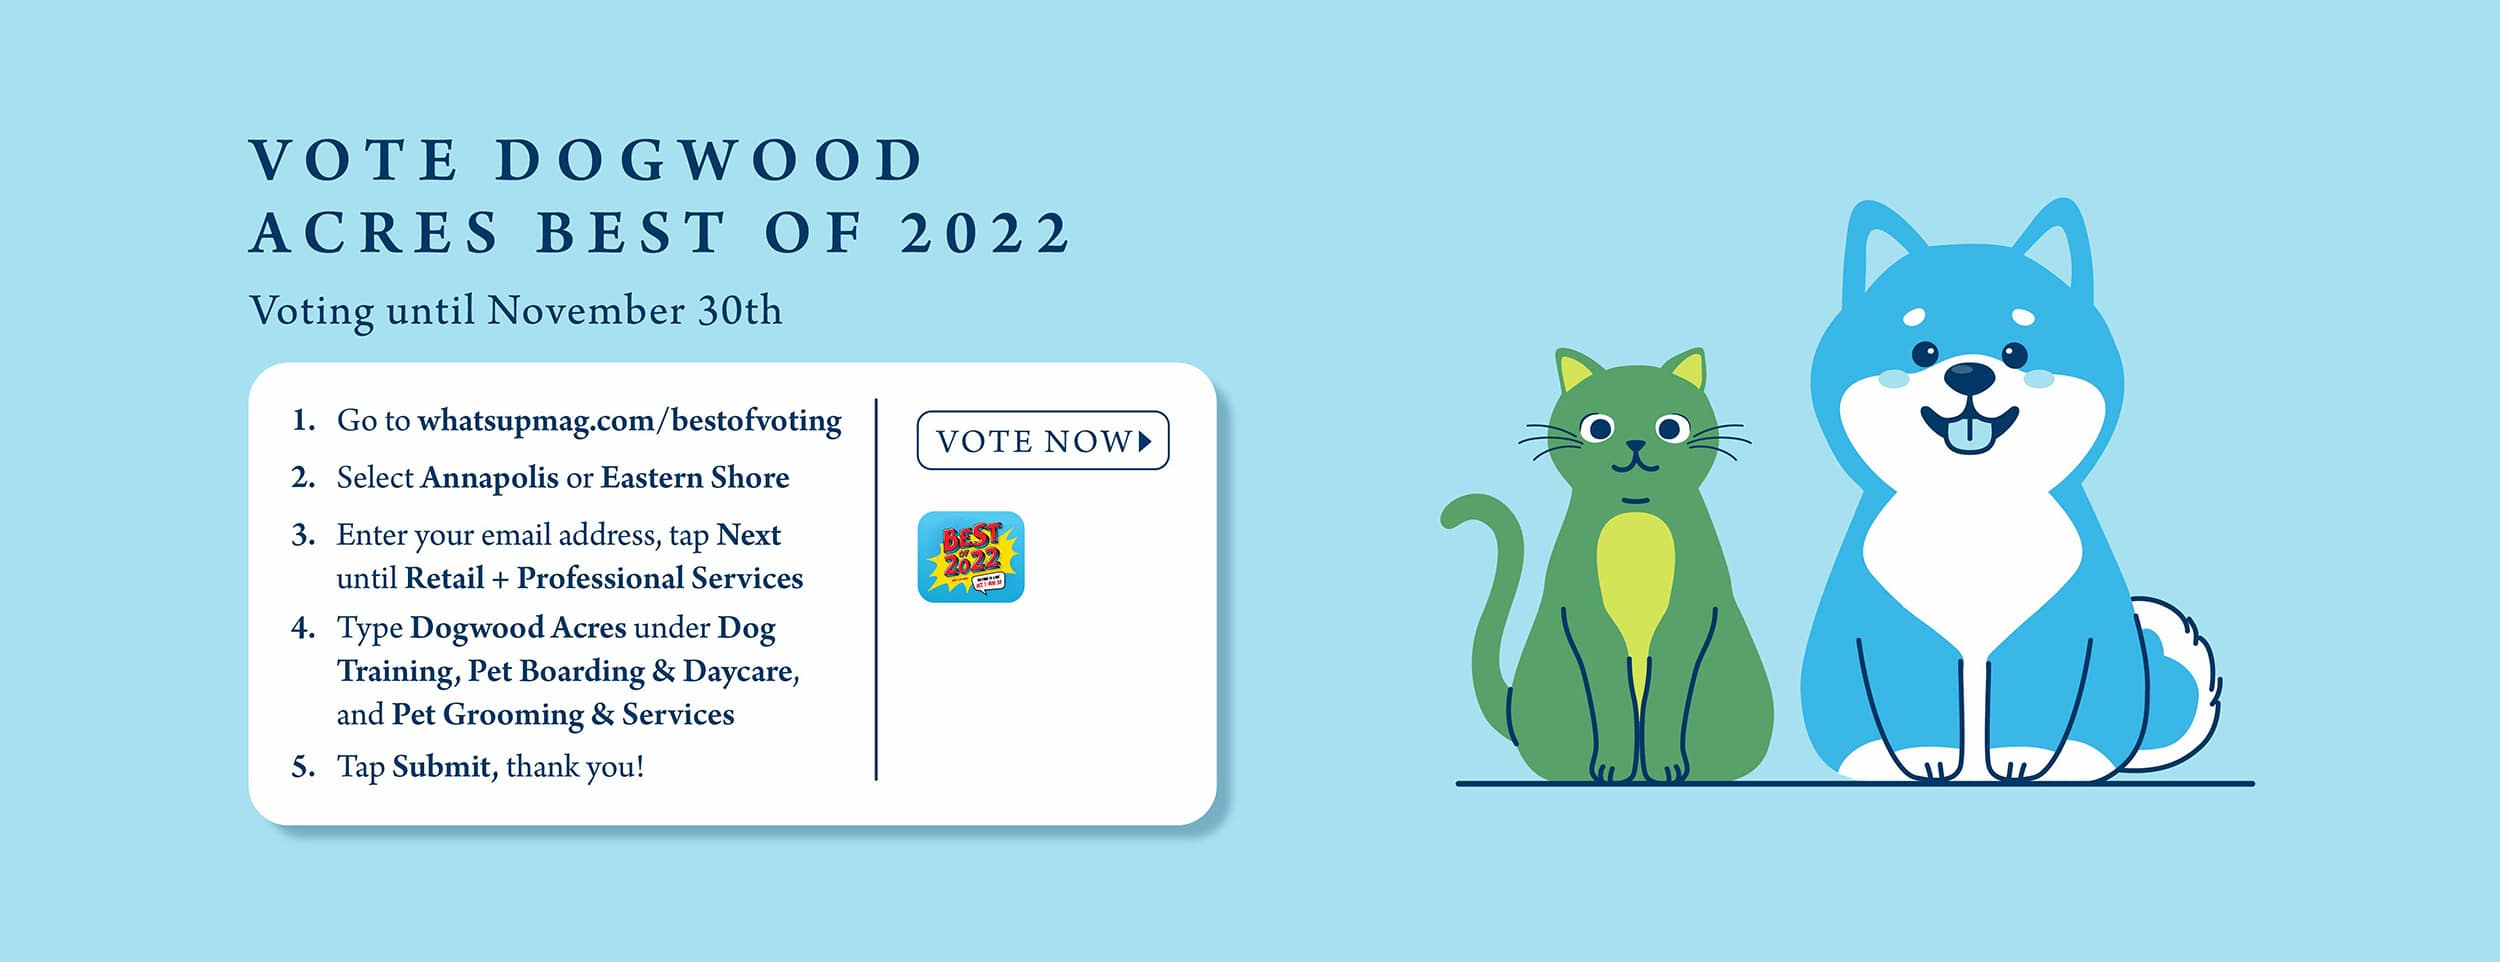 Vote Dogwood Acers Best of 2022